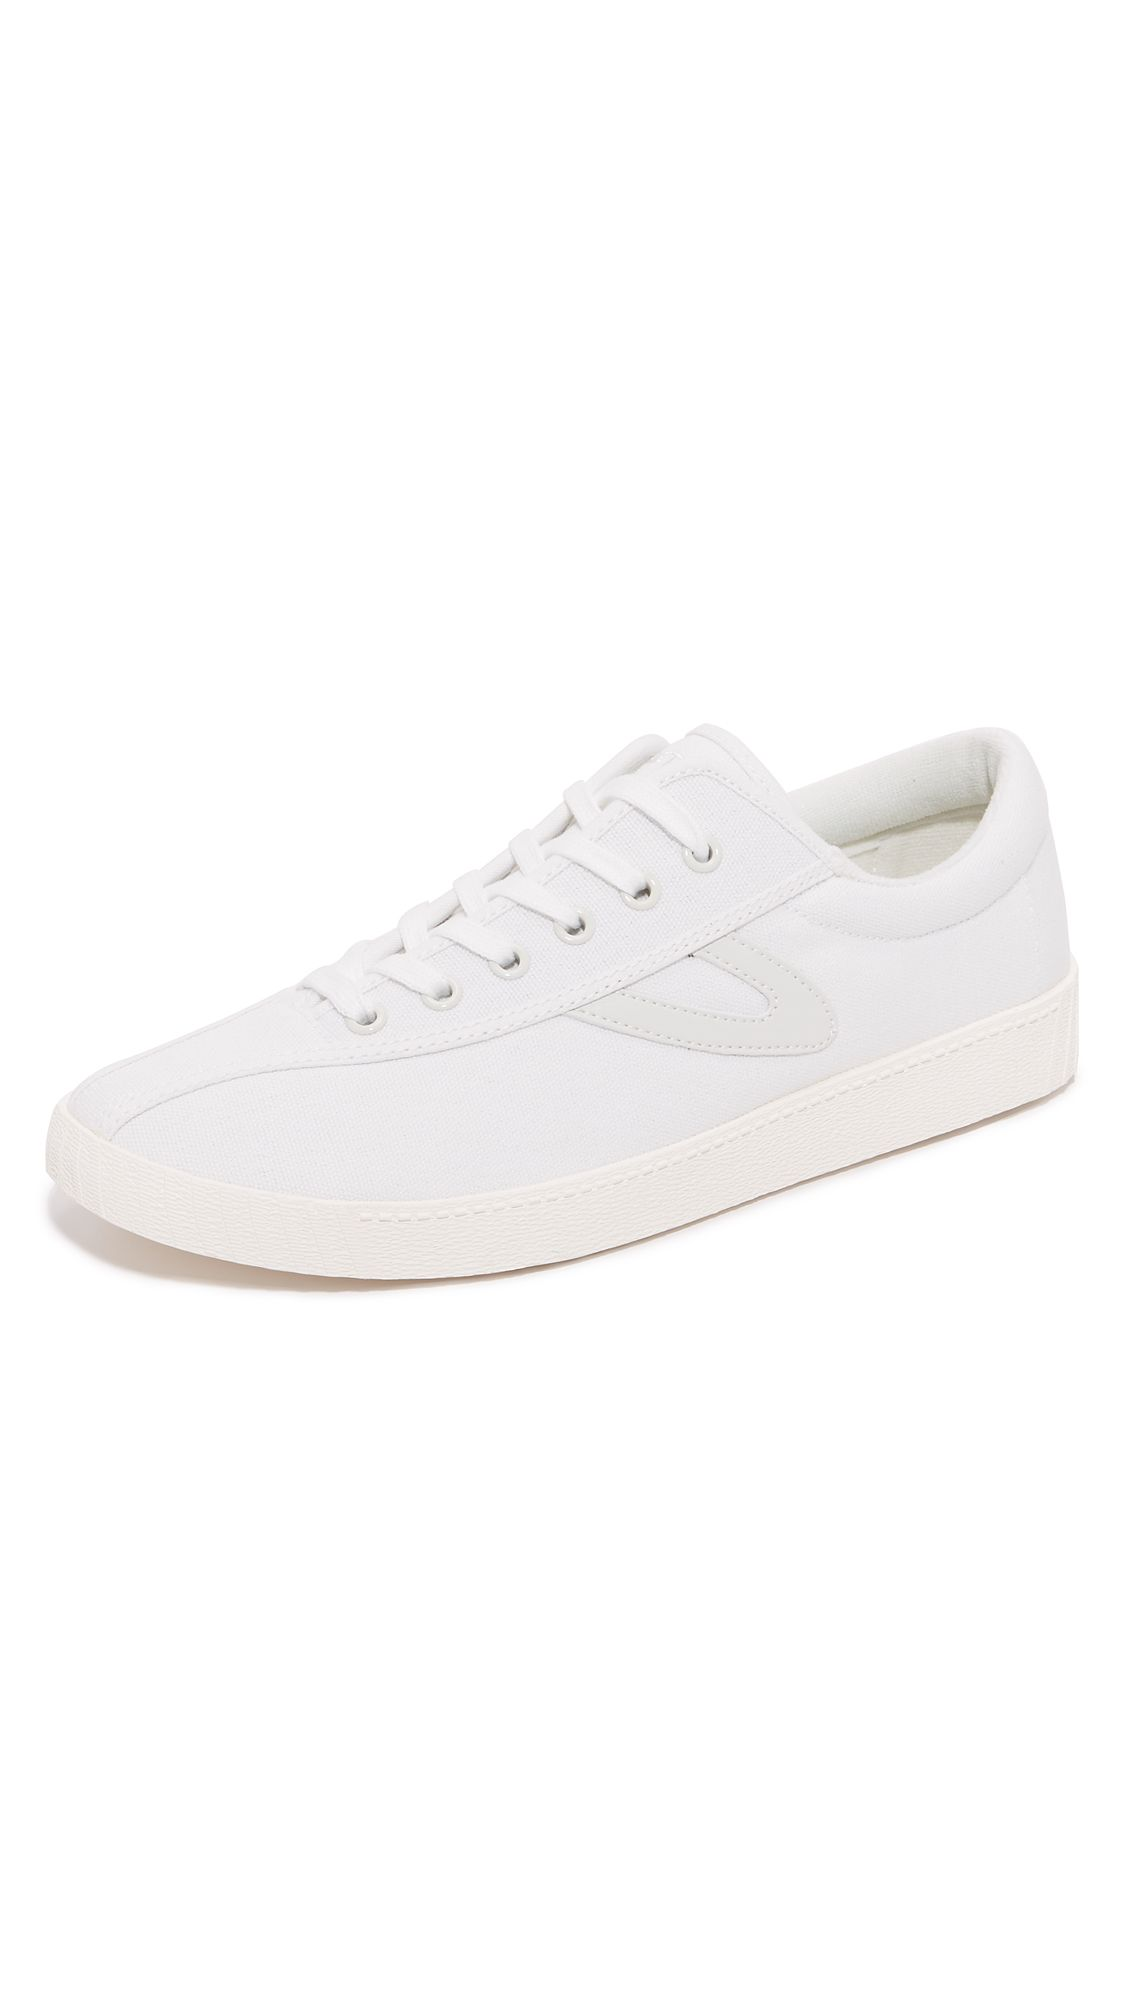 TRETORN Nylite Plus Sneakers. #tretorn #shoes #sneakers